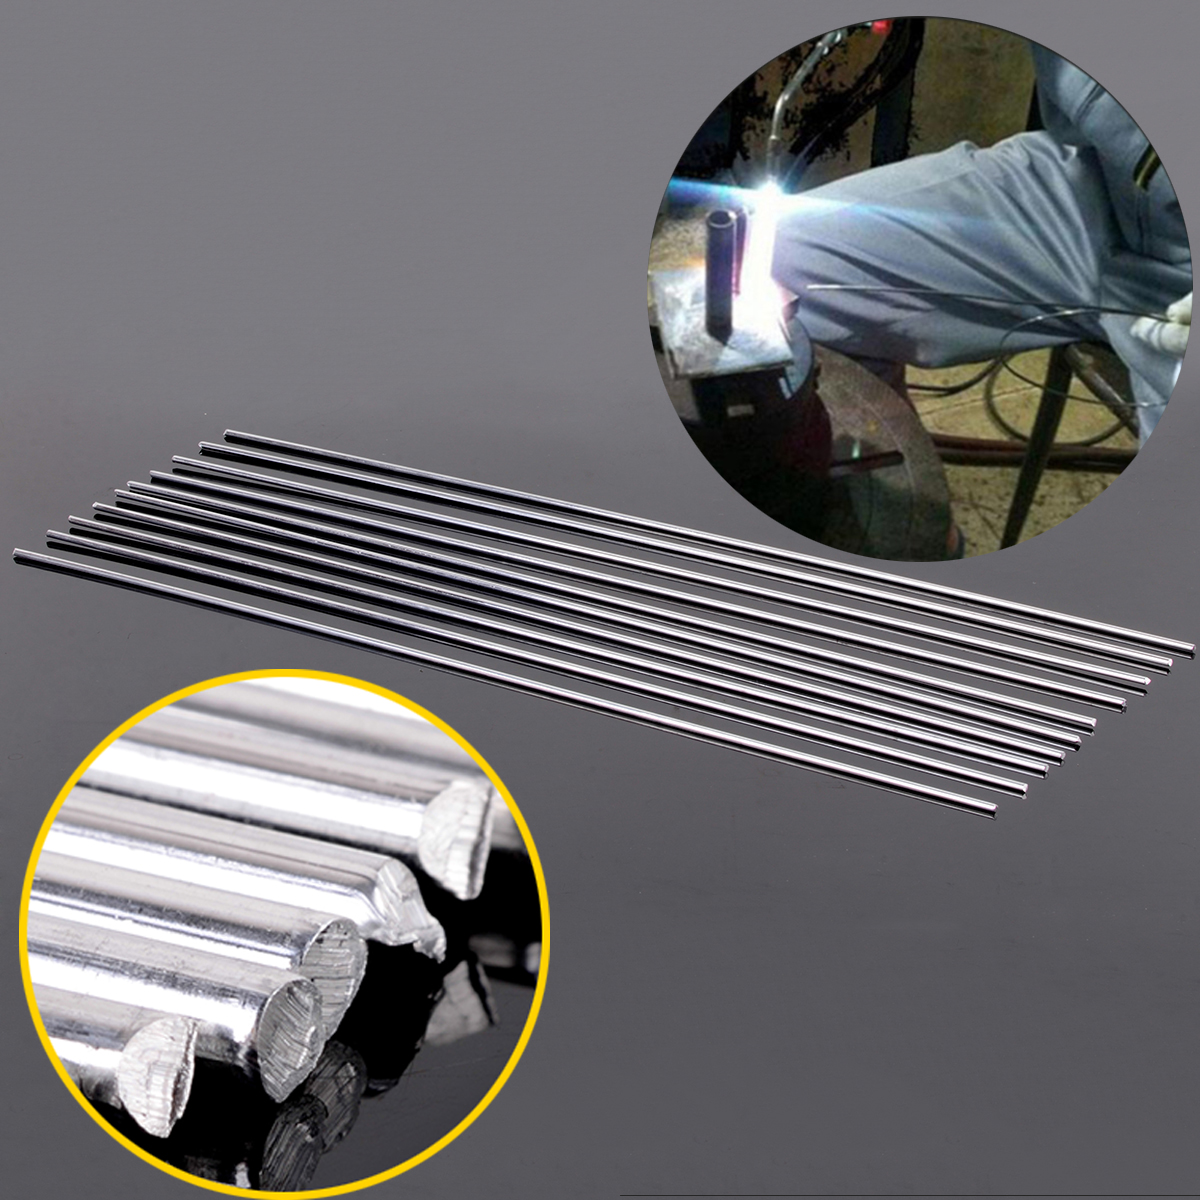 10pcs Aluminium Tig Welding Soldering Brazing Rods with Corrosion Resistance 3.2mmx450mm